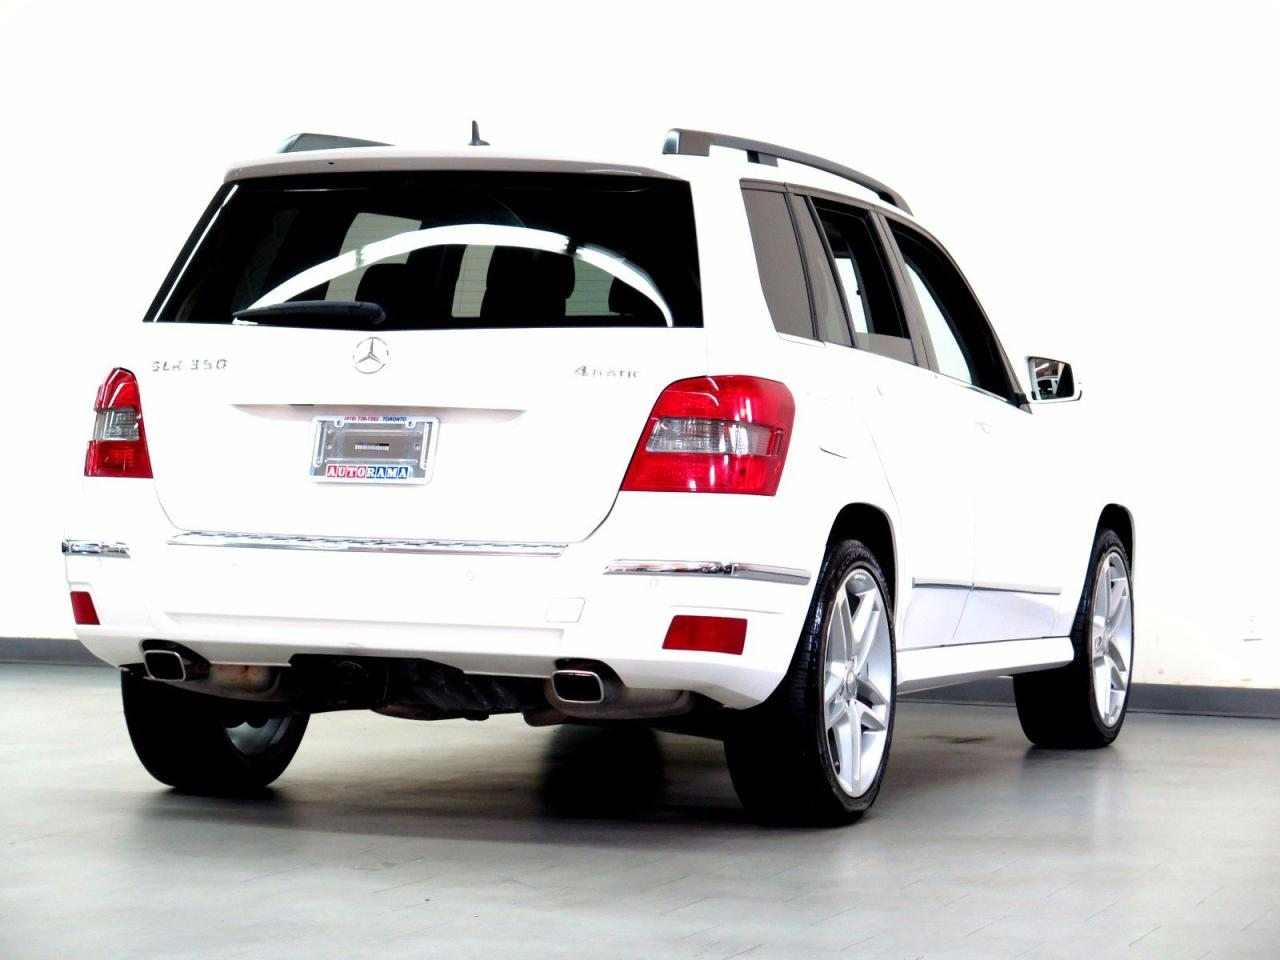 used 2010 mercedes benz glk350 leather panoramic sunroof 4wd for sale in north york ontario. Black Bedroom Furniture Sets. Home Design Ideas